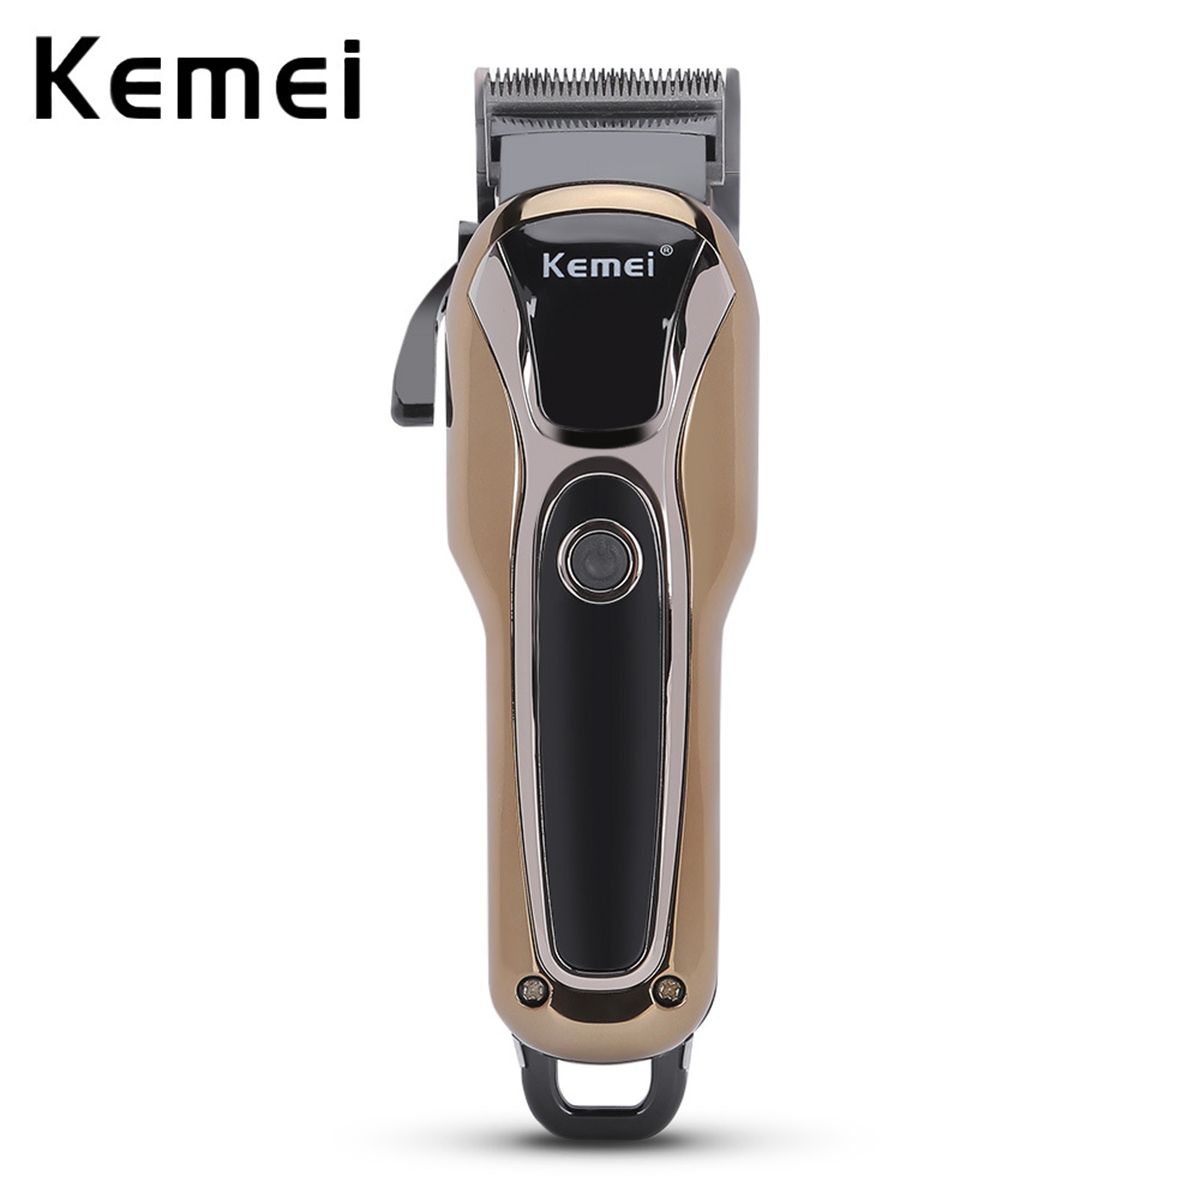 KM-1990 Turbocharged rechargeable hair clipper professional hair trimmer for men electric cutter hair cutting machine haircutKM-1990 Turbocharged rechargeable hair clipper professional hair trimmer for men electric cutter hair cutting machine haircut